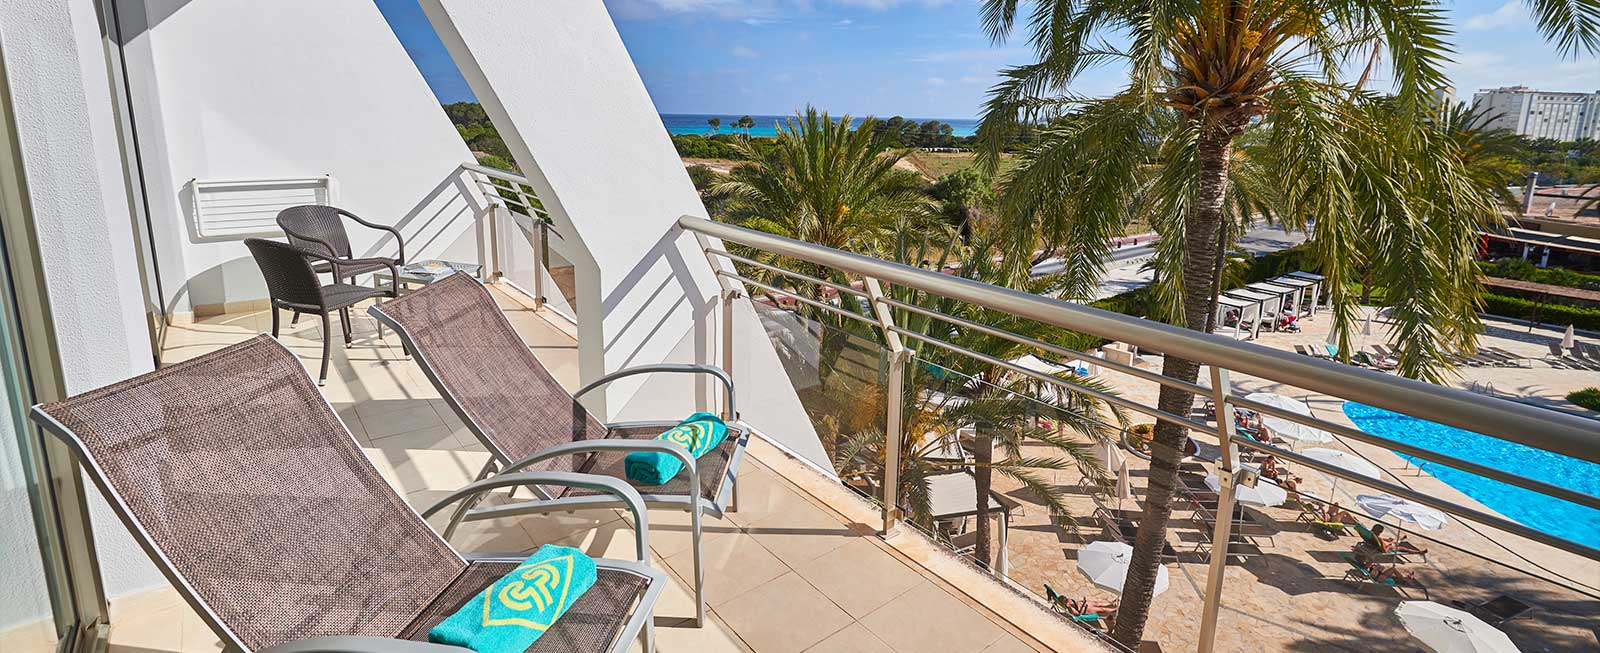 Suite Protur Sa Coma Playa Hotel Spa